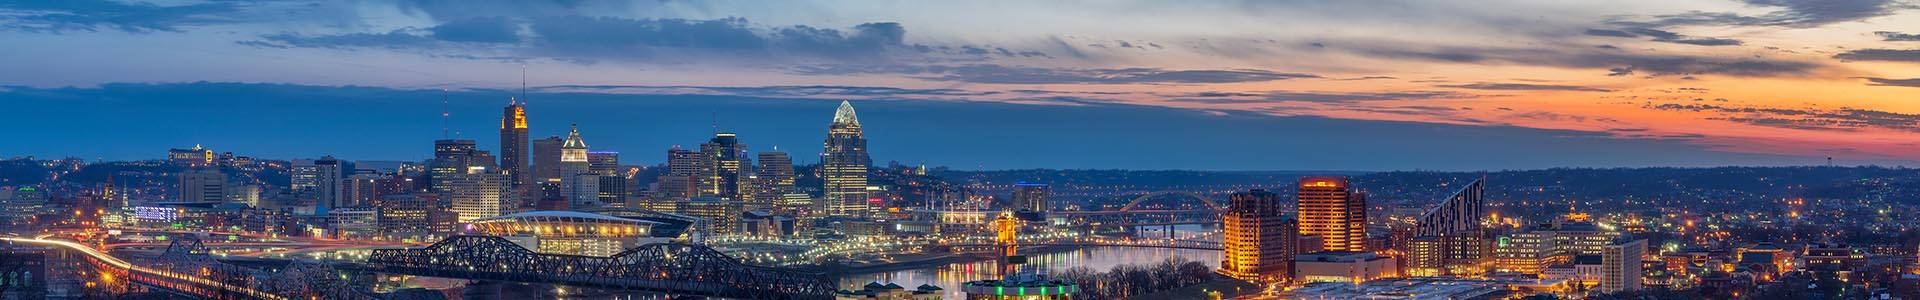 IRR-Cincinnati/Dayton: Insights into the Local Market